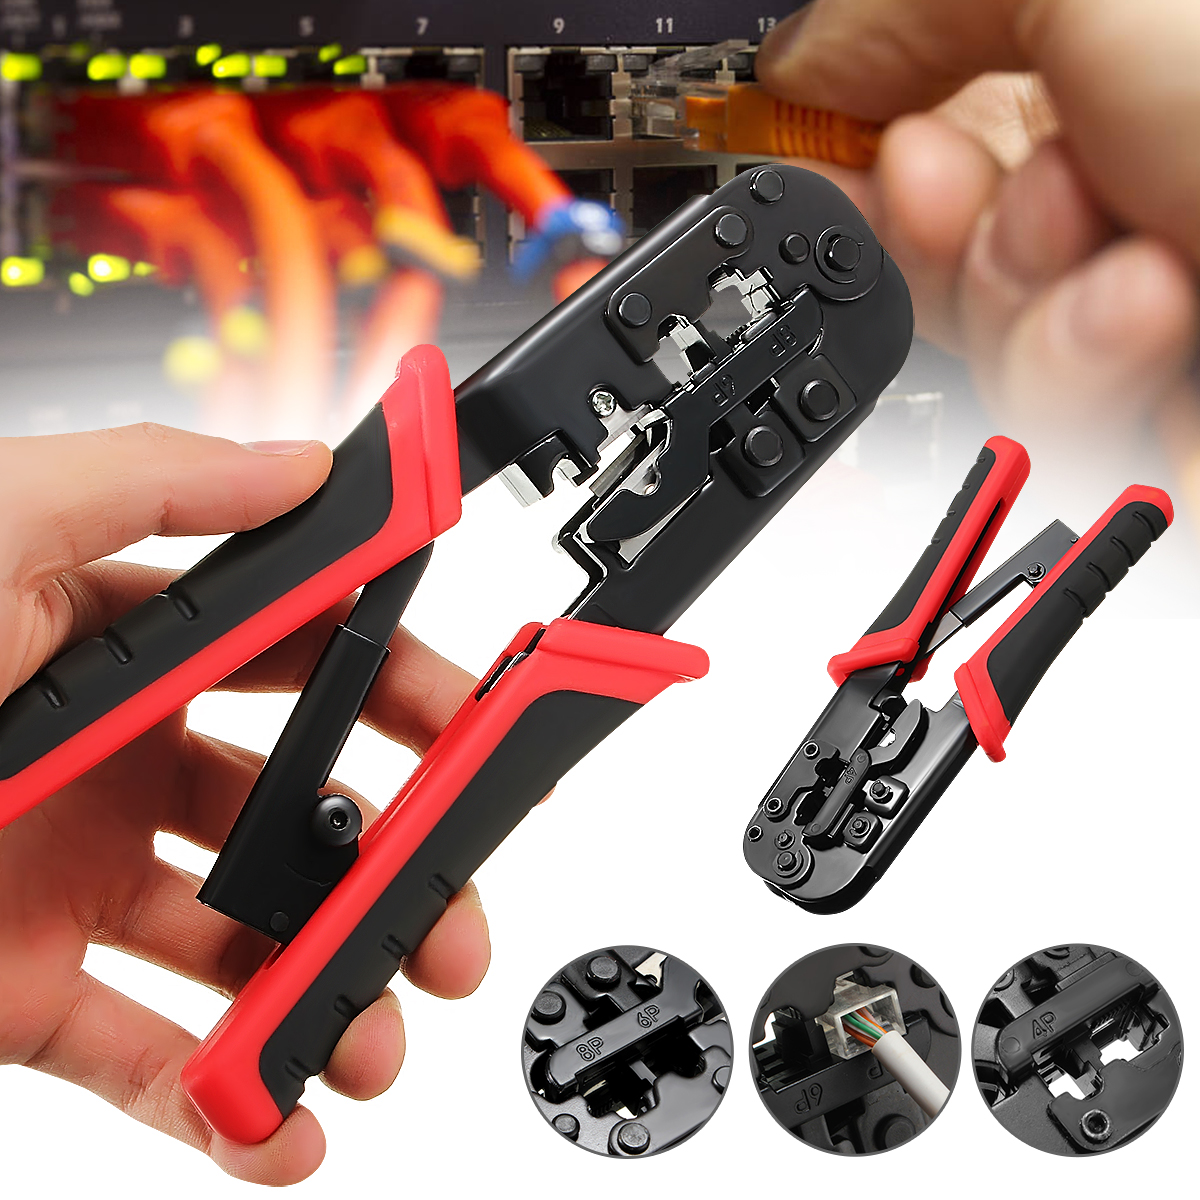 Doersupp 1PC Network Crimping Plier Multifunctional Ethernet Network Cable Crimp Tool LAN Crimper Cutter Pliers Hand Tool|Pliers| |  - title=